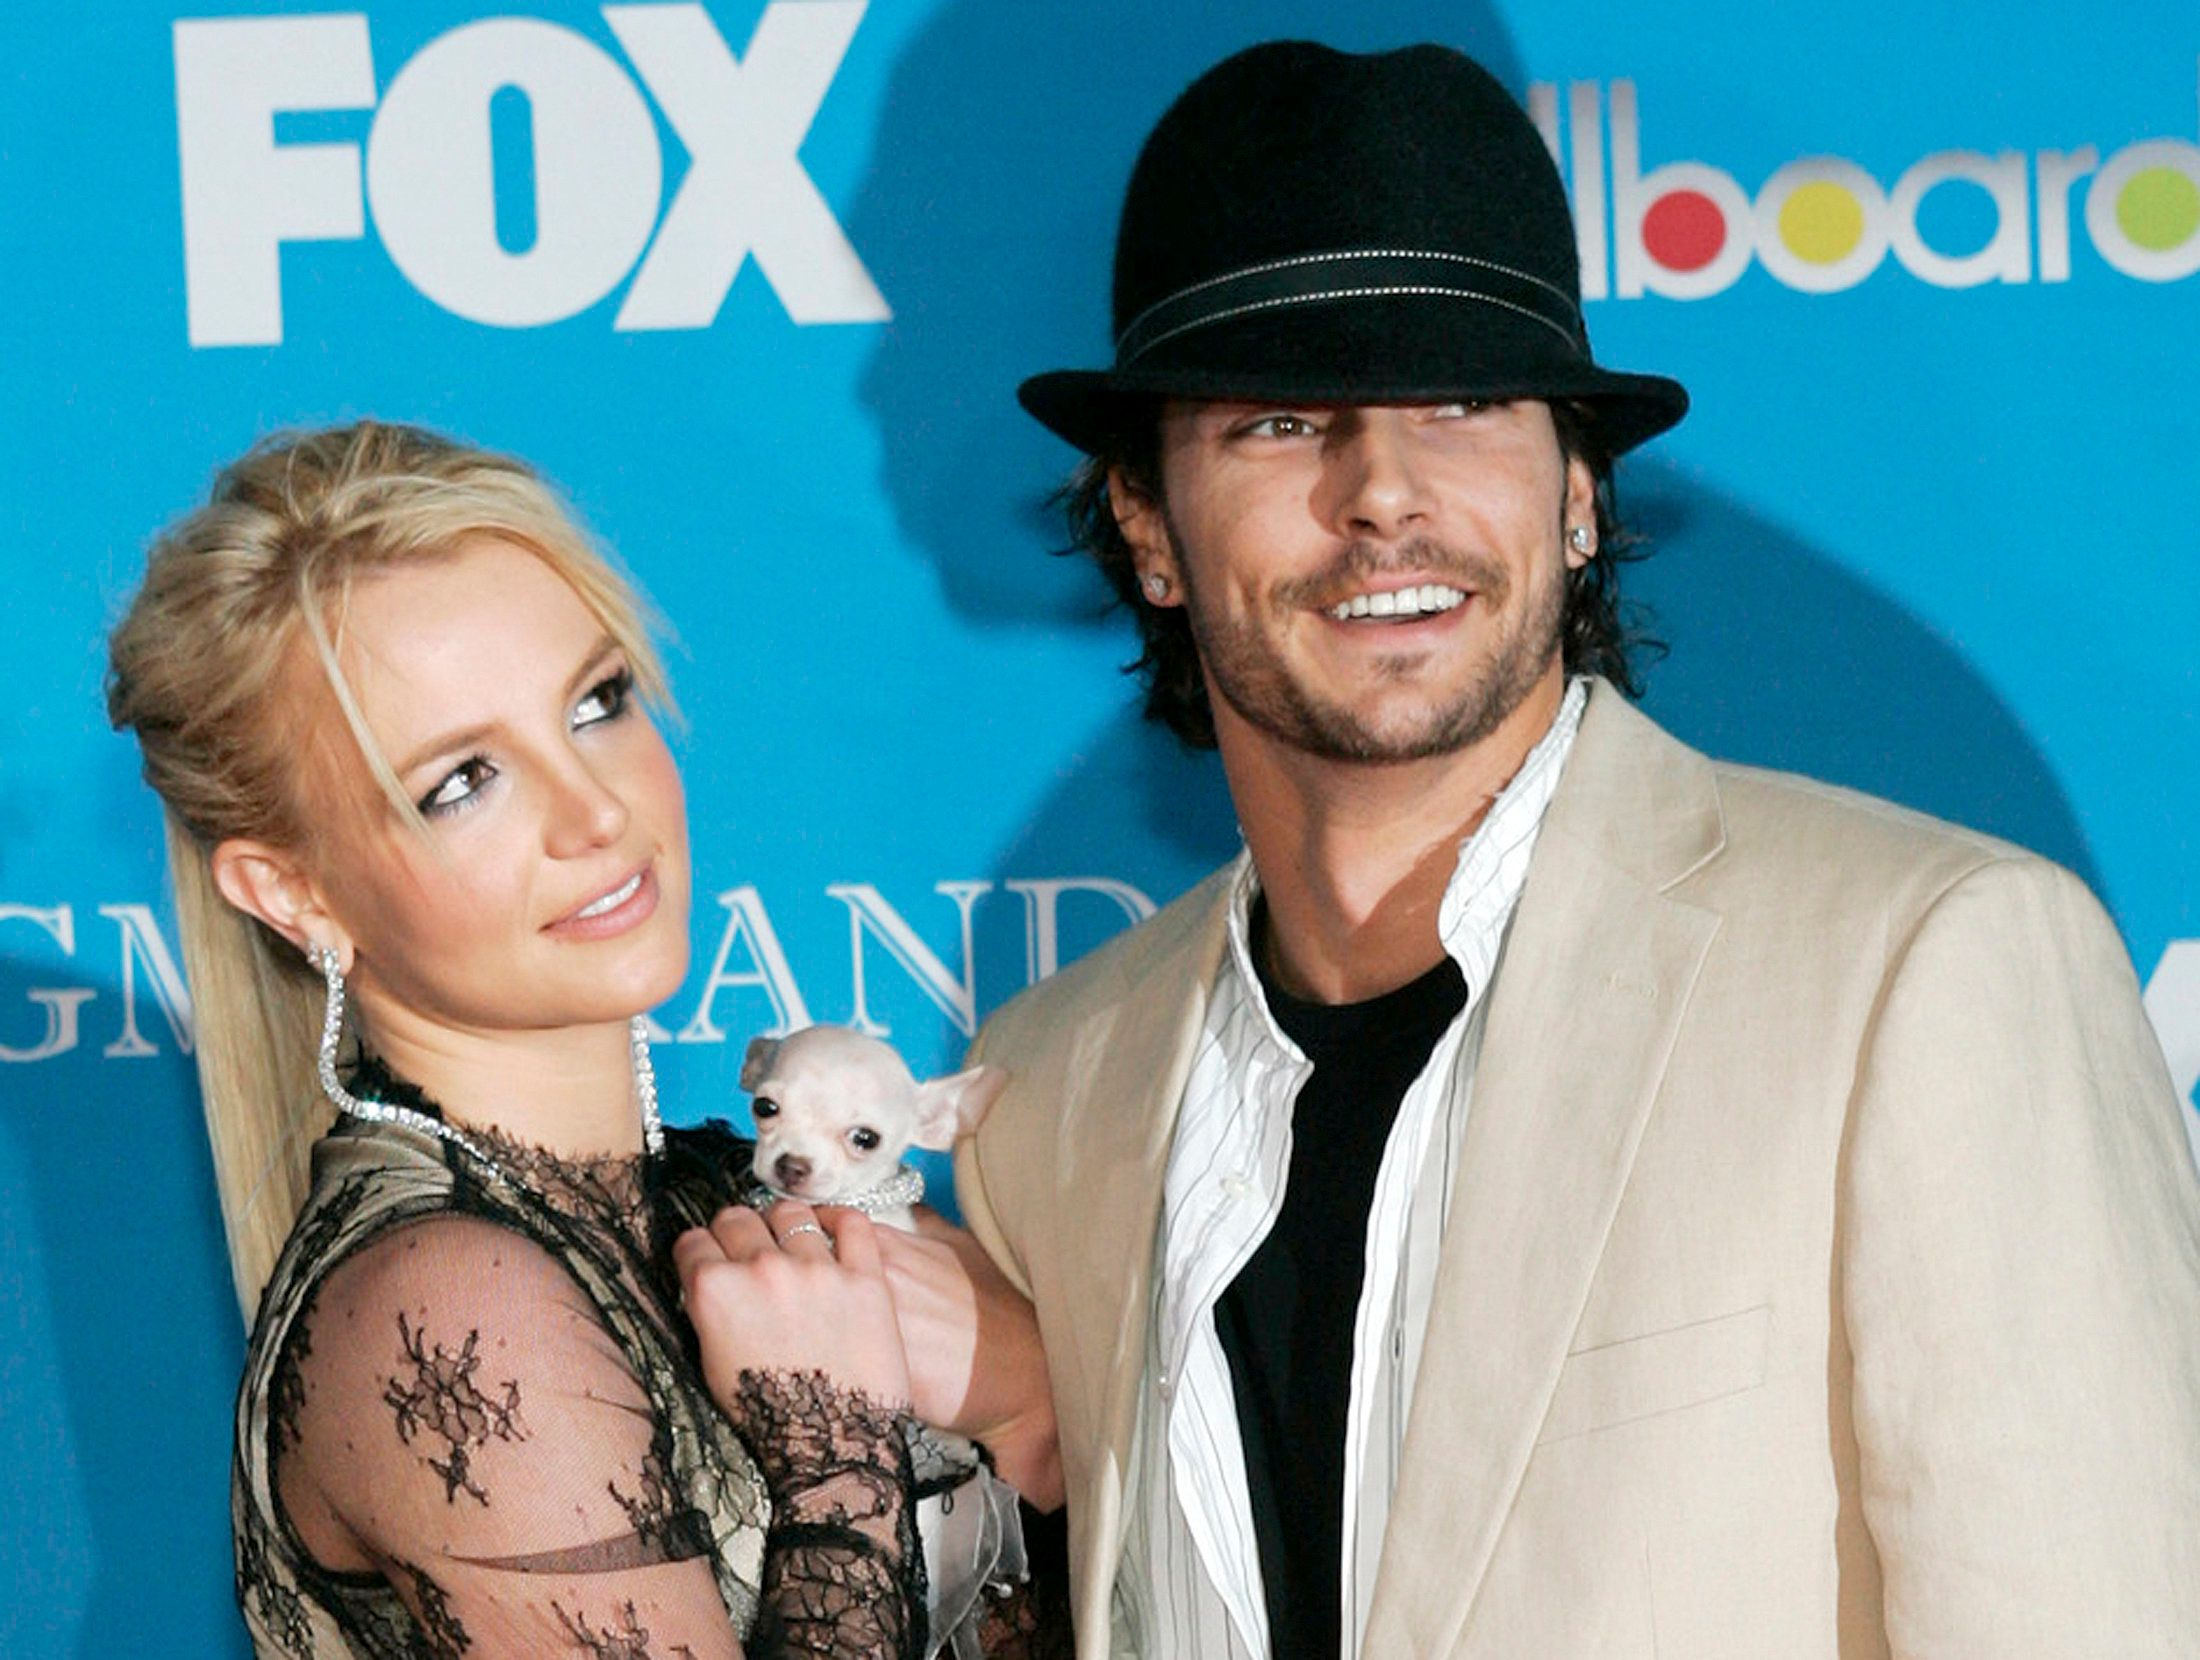 Britney Spears and Kevin Federline arrive for the 2004 Billboard Music Awards.